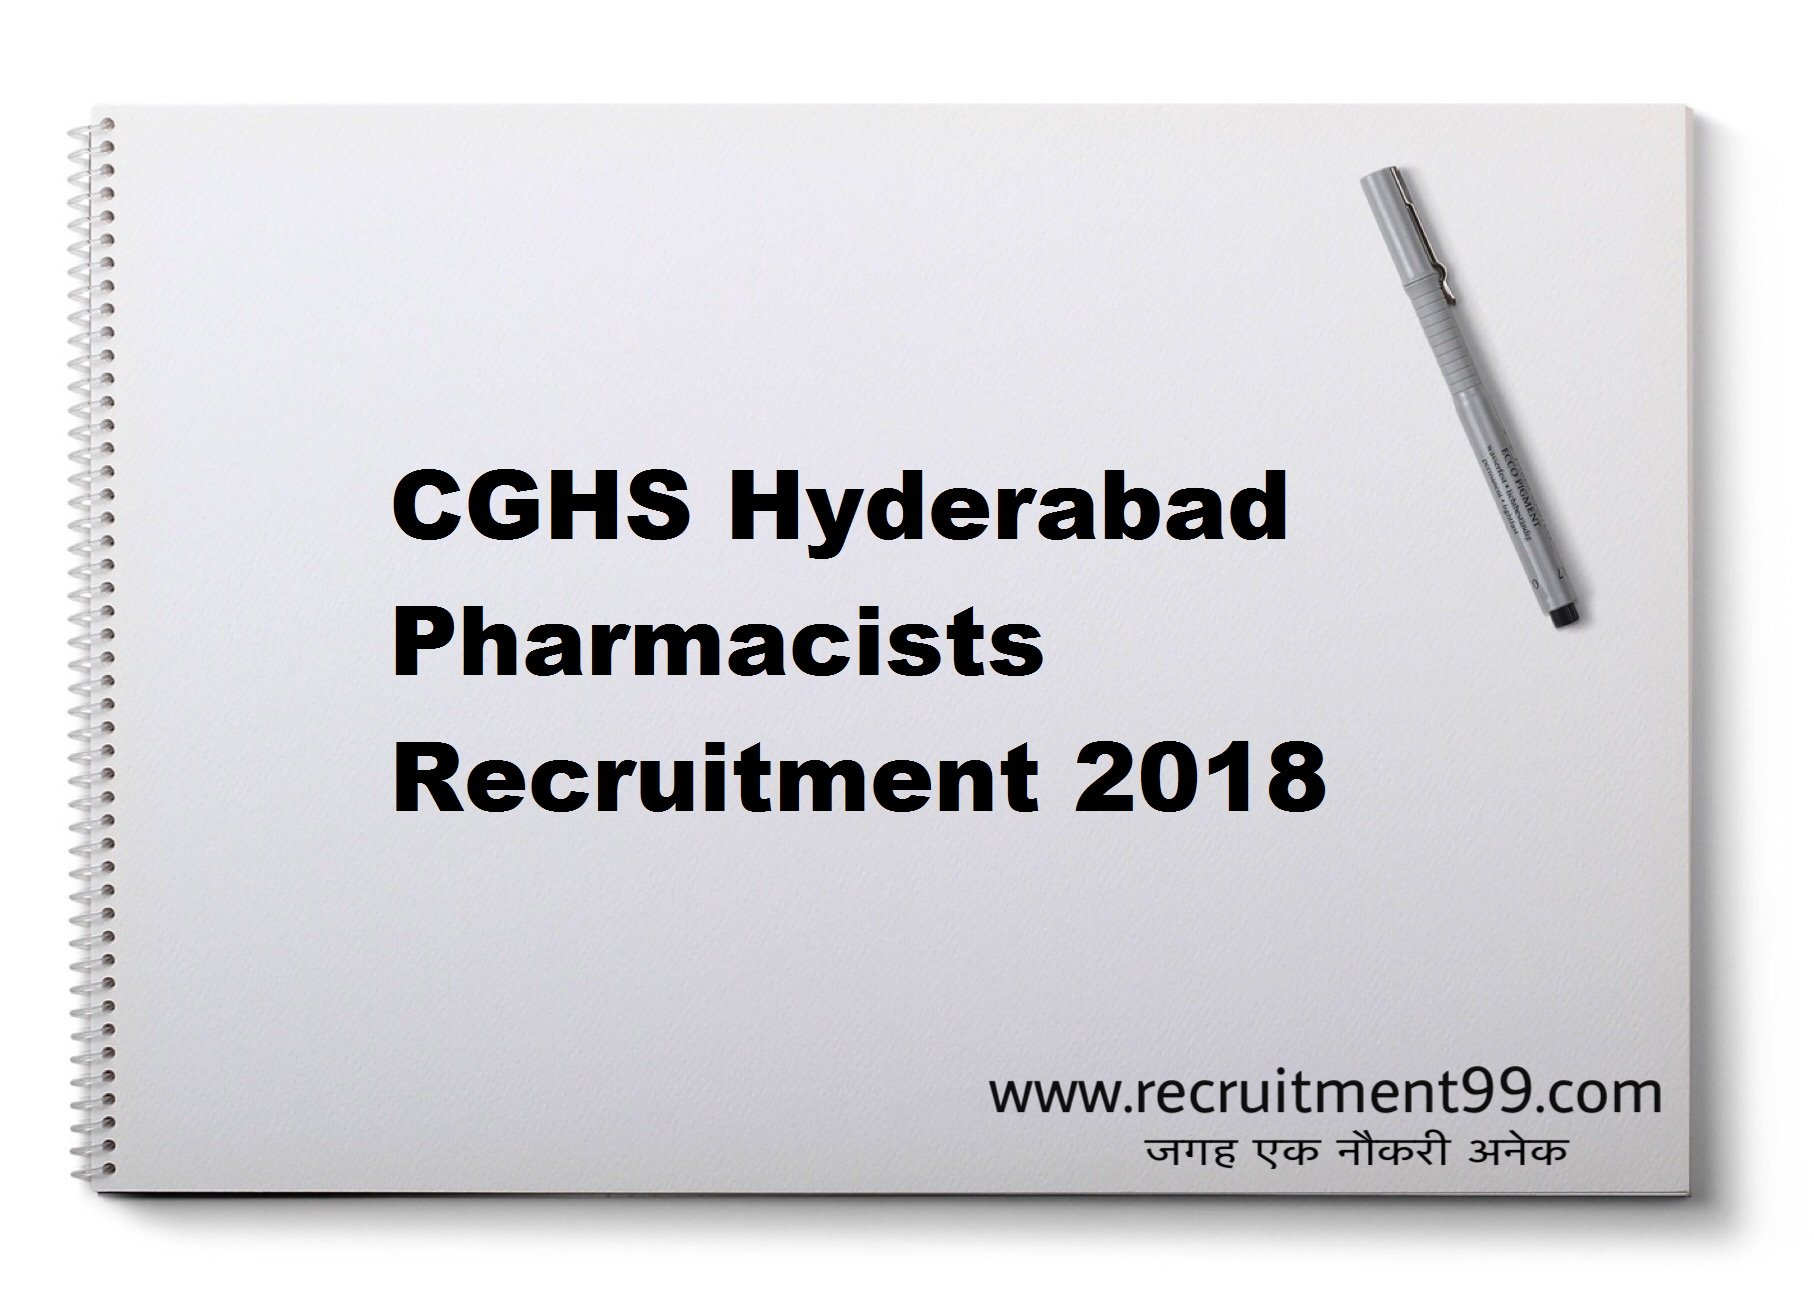 CGHS Hyderabad Pharmacists Recruitment Hall Ticket Result 2018